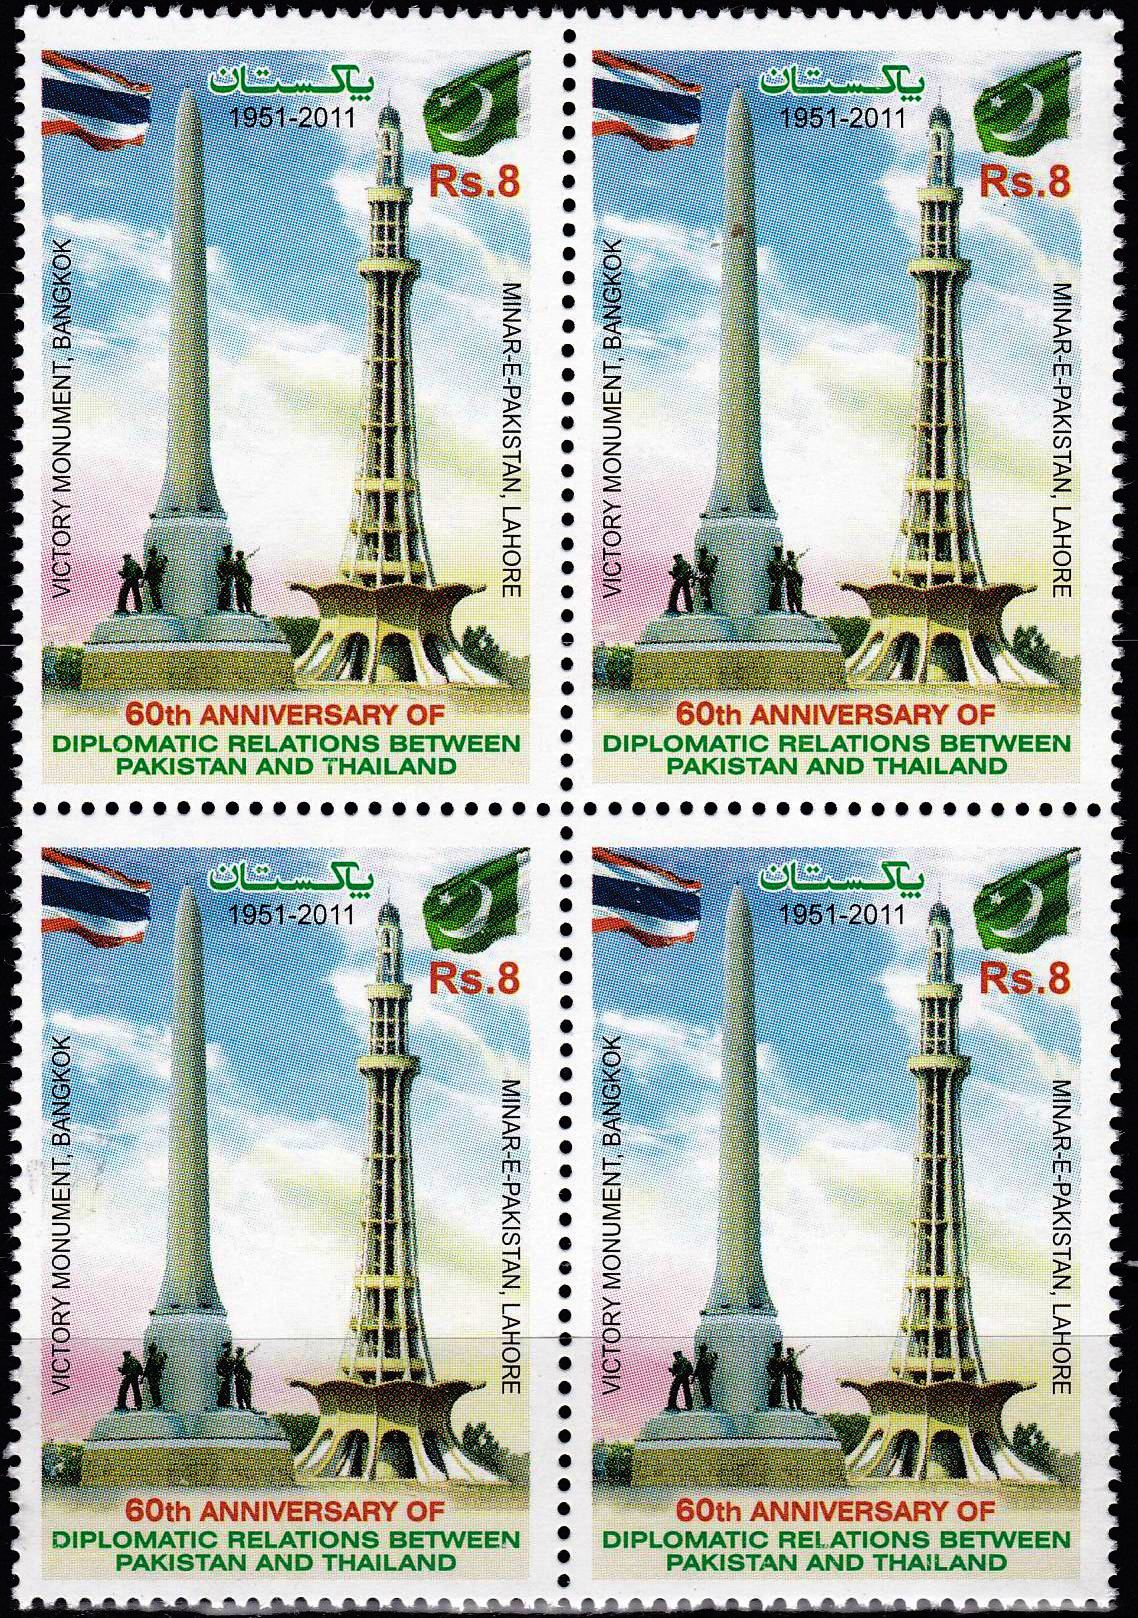 Pakistan Stamps 2011 Joint Issue Dip Relations Pakistan Thailand